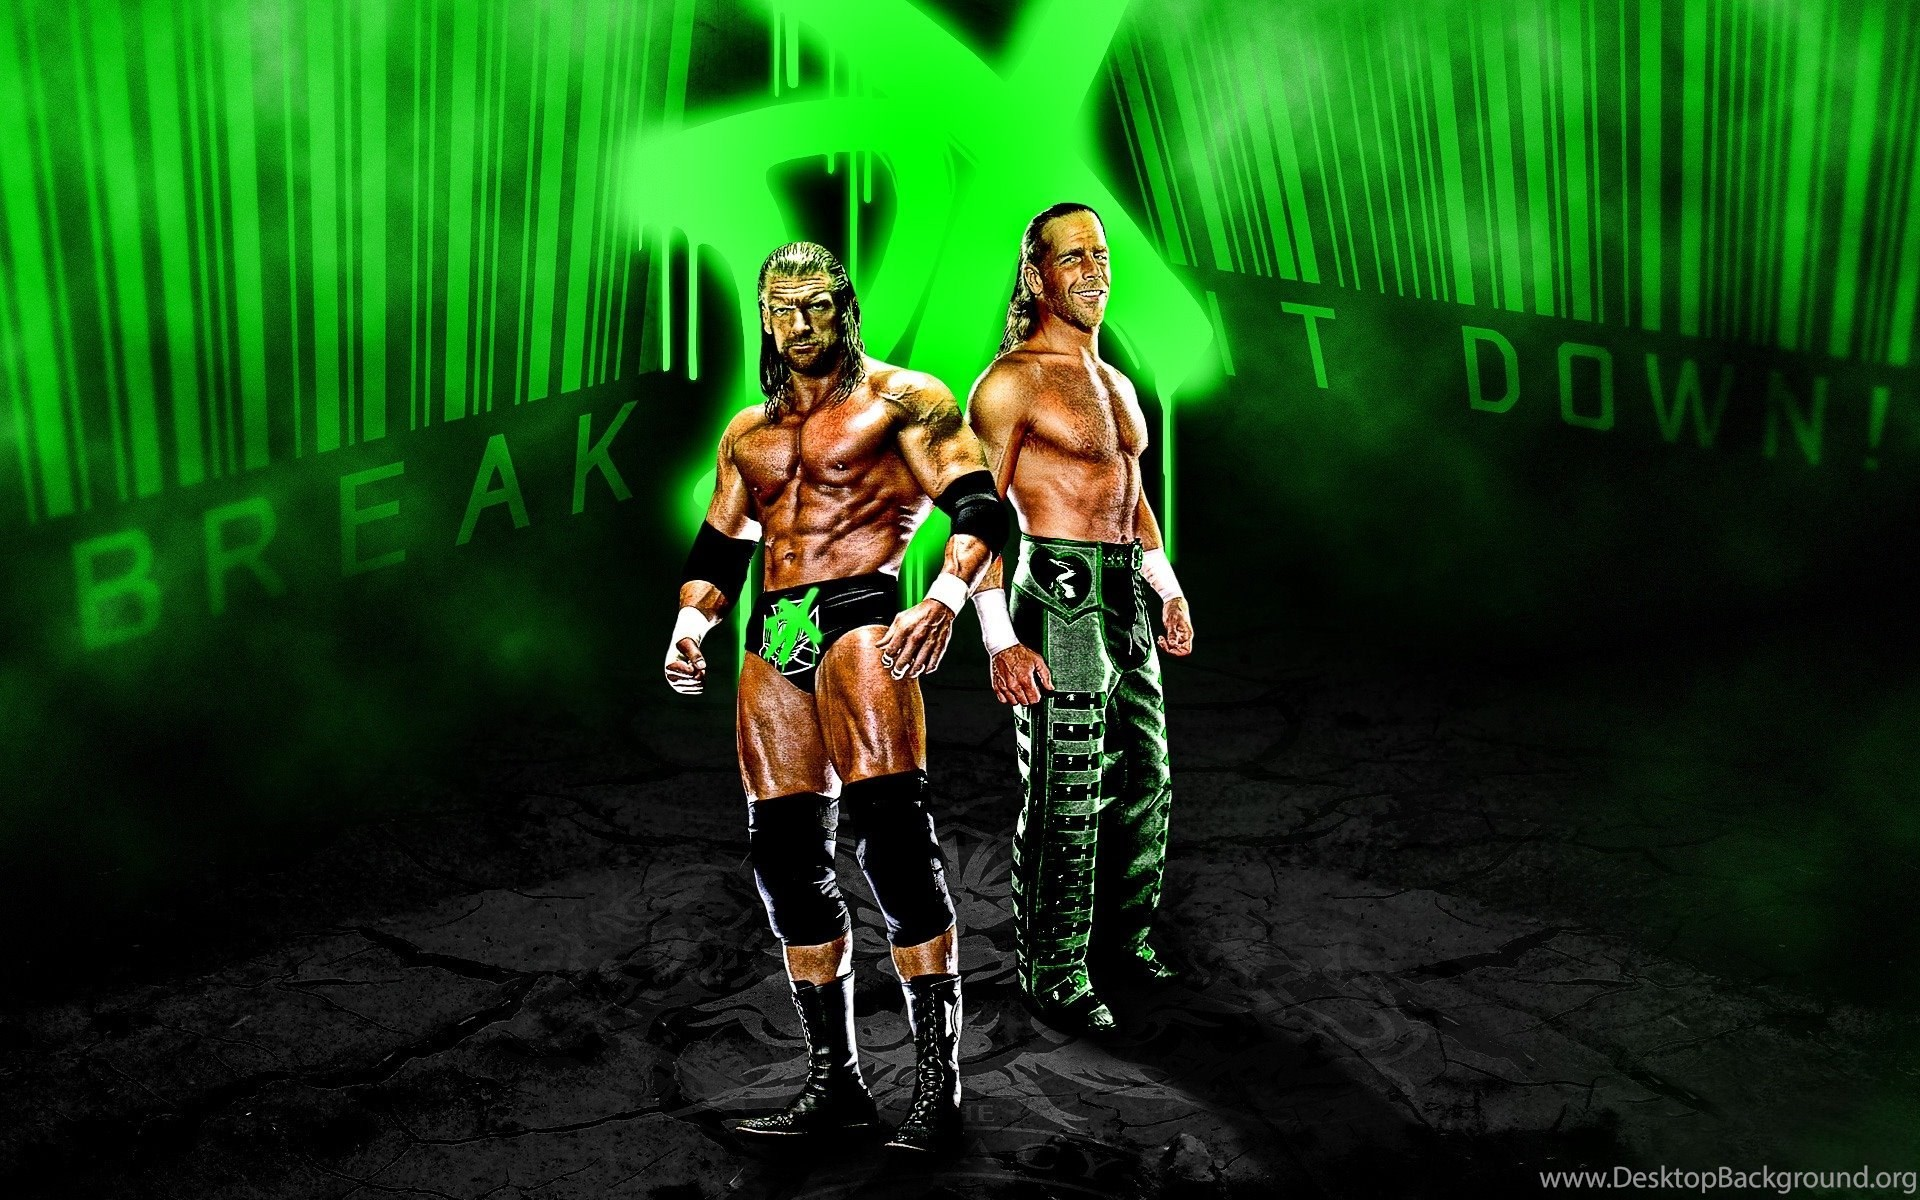 Wwe Dx Hd Wallpaper Wwe Dx Wallpaper 183 ① Wallpapertag